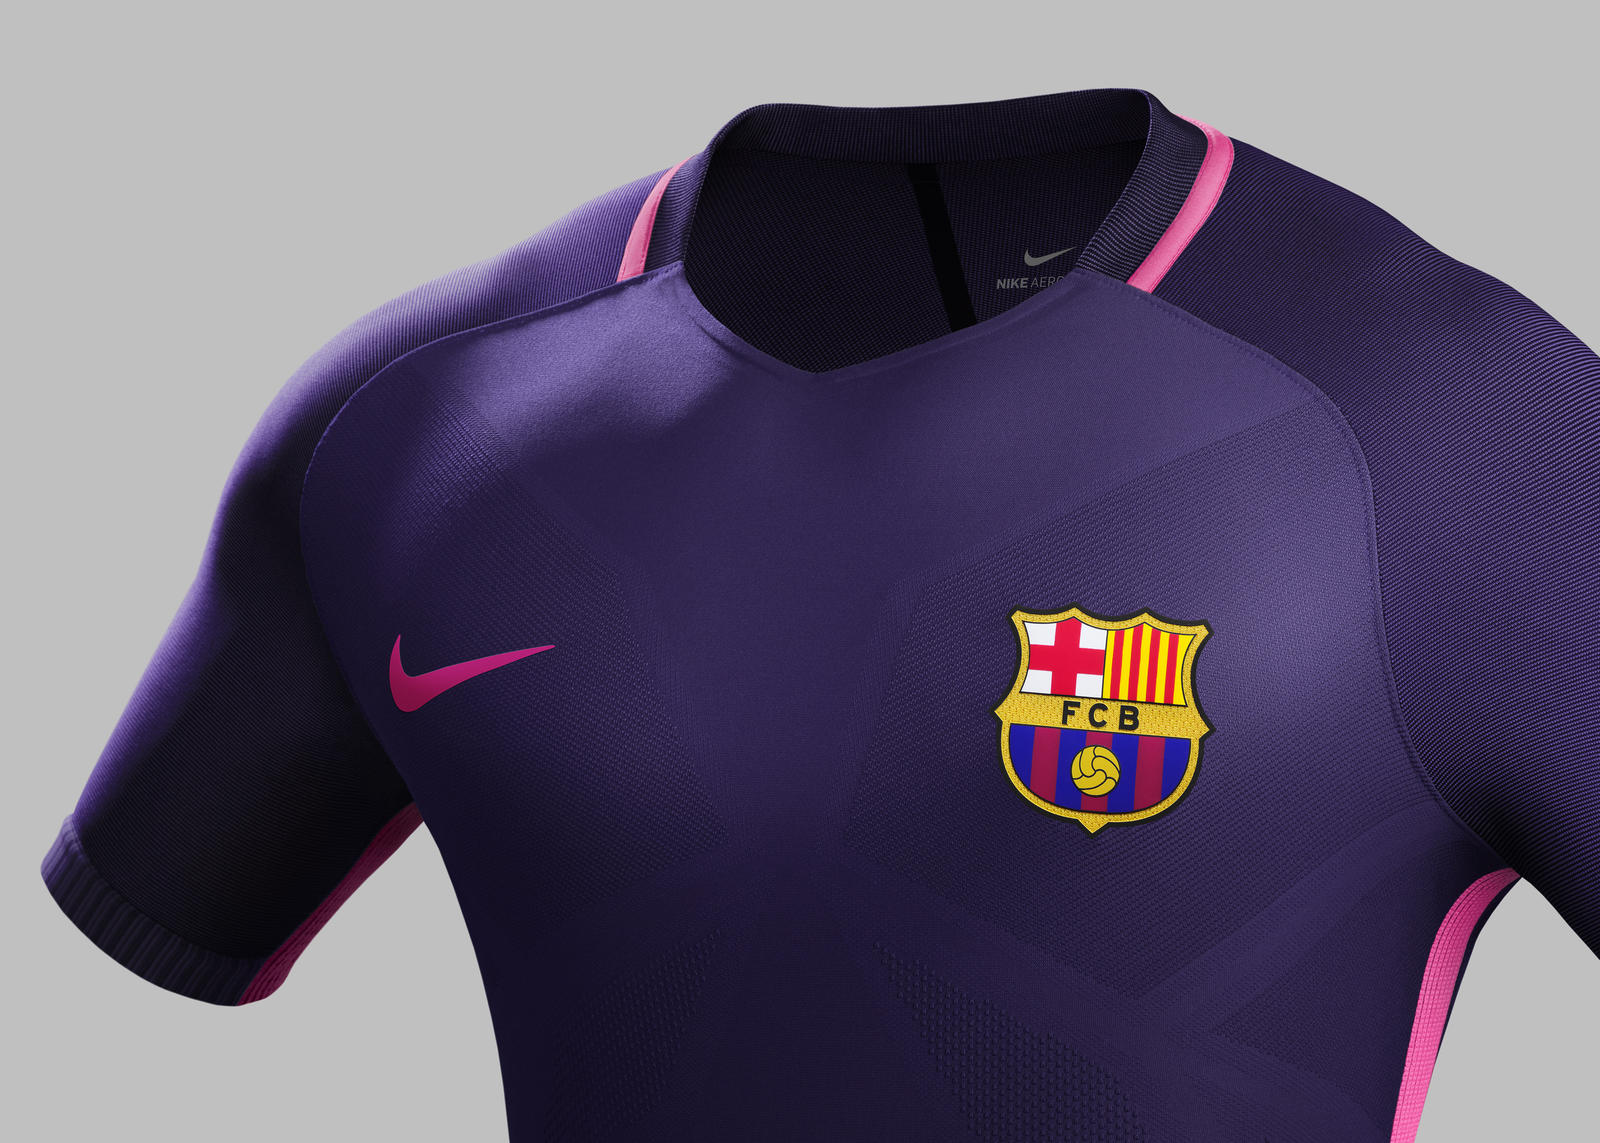 96cd8ad9c0a Su16 CK Comms A Front Match FCB R. FC Barcelona away kit 2016-2017.  Su16 CK Comms A Crest Match FCB R